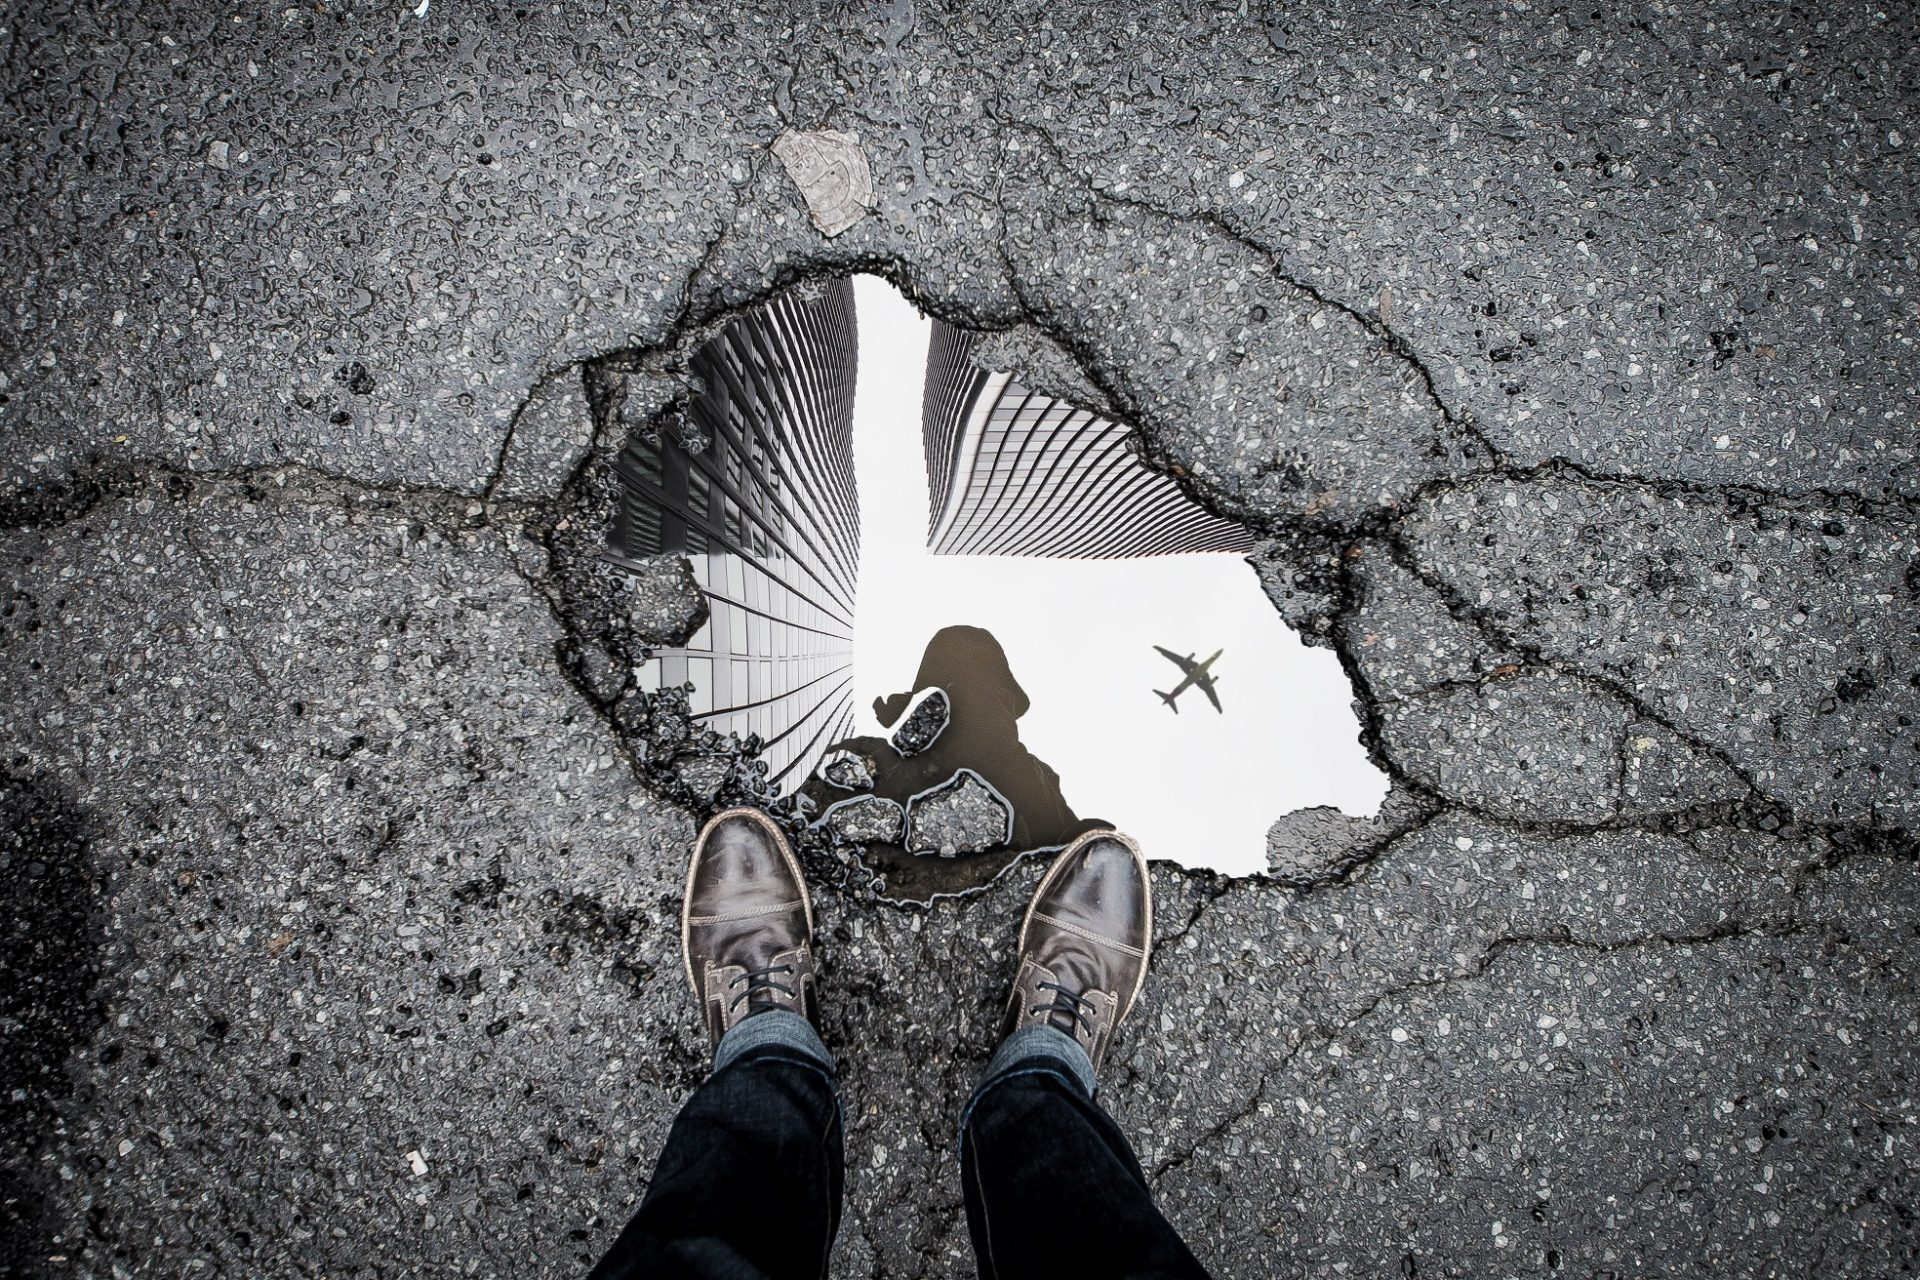 Man standing on the edge of a pothole taking a picture of the water which is reflecting the skyscape